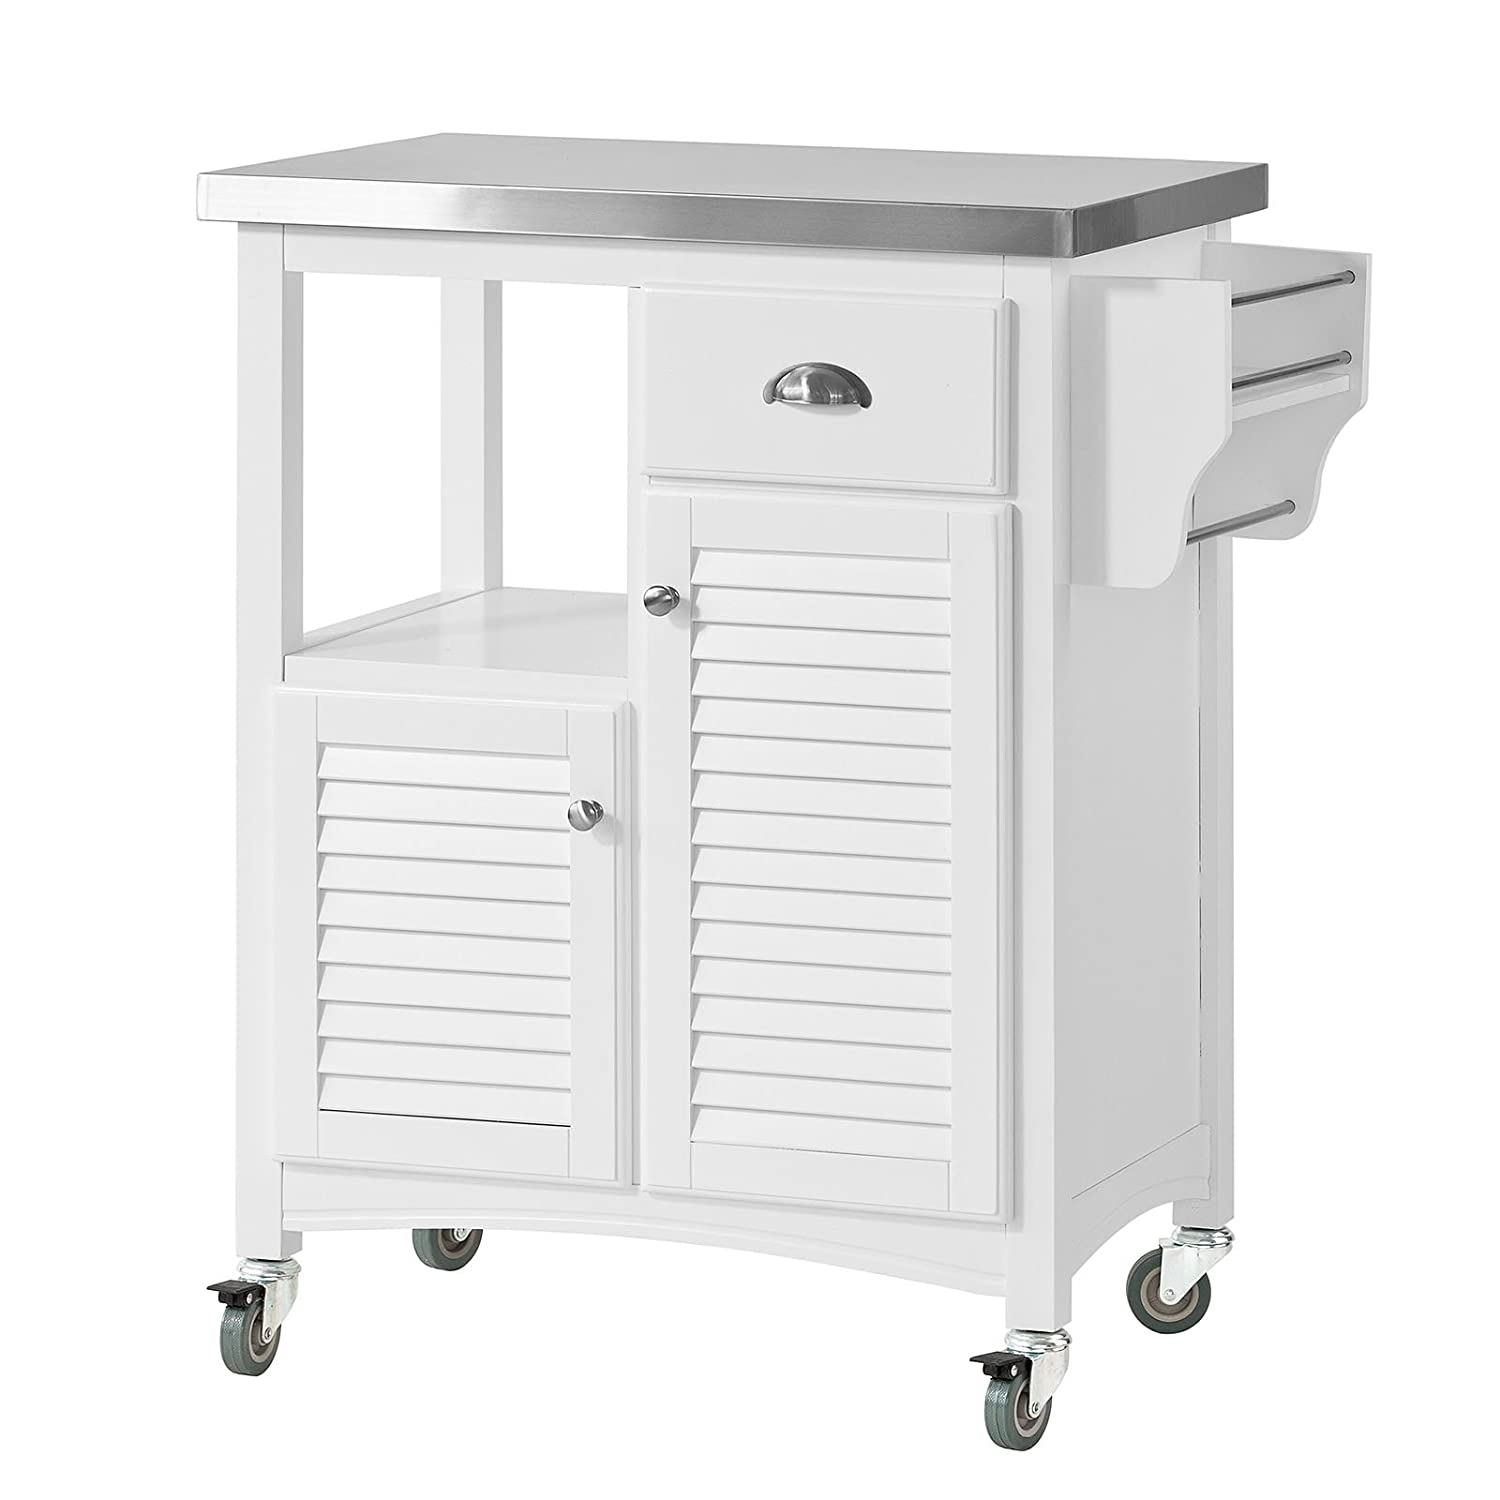 SoBuy® Kitchen Storage Serving Trolley Cart with Stainless Steel Worktop & Cupboards, FKW37-W